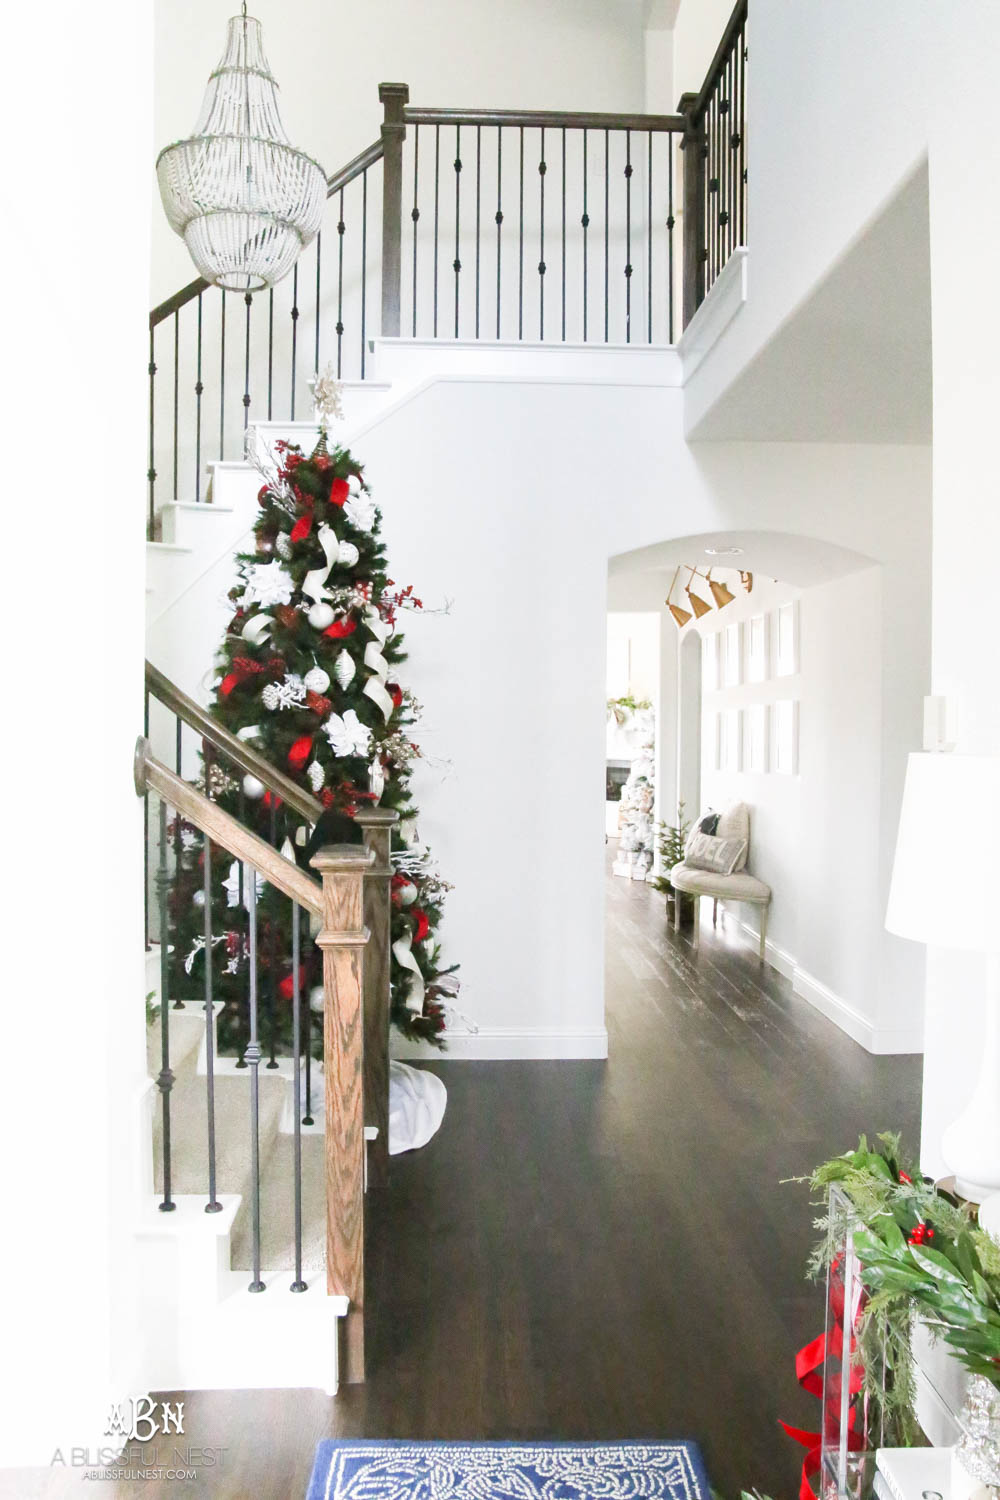 Simple classic Christmas tree and holiday entryway with red and white holiday décor. Christmas tree in stairway with all white walls. #christmasentryway #christmasentry #christmasentrydecor #christmasentrywayideas #christmashometour